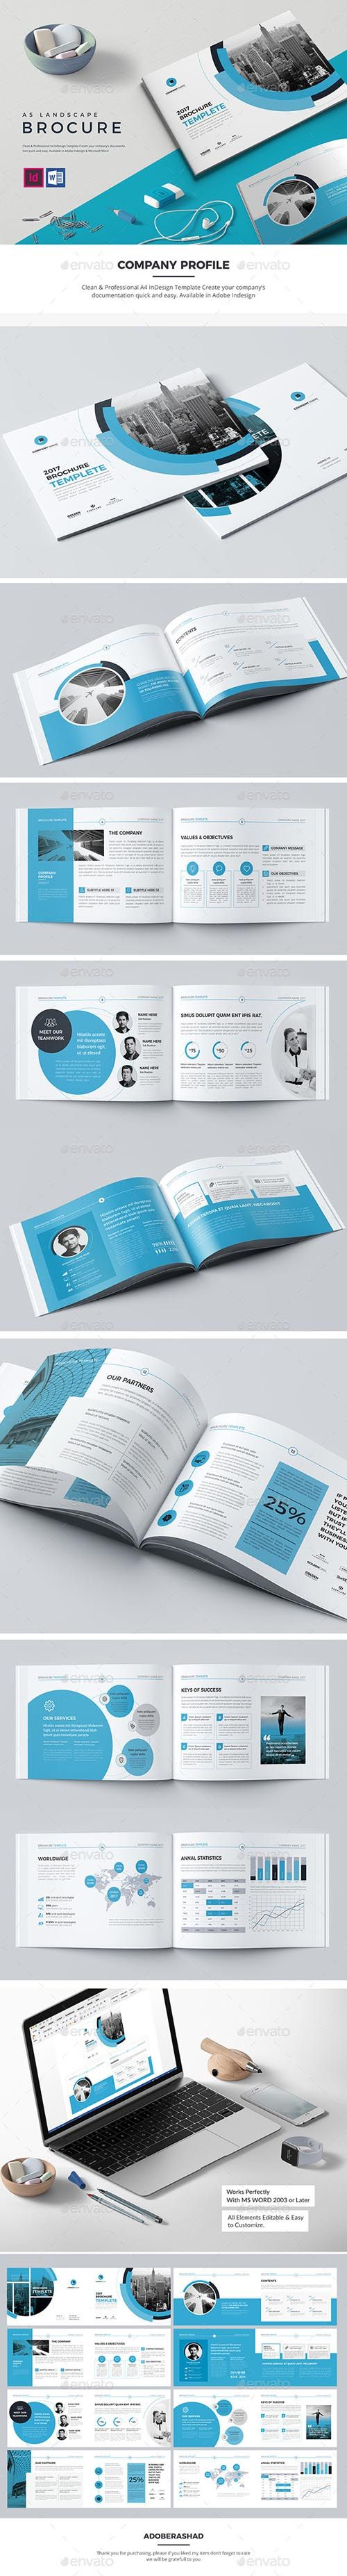 Co Landscape Brochure 16 Pages 19968179 | Free Indesign Templates ...